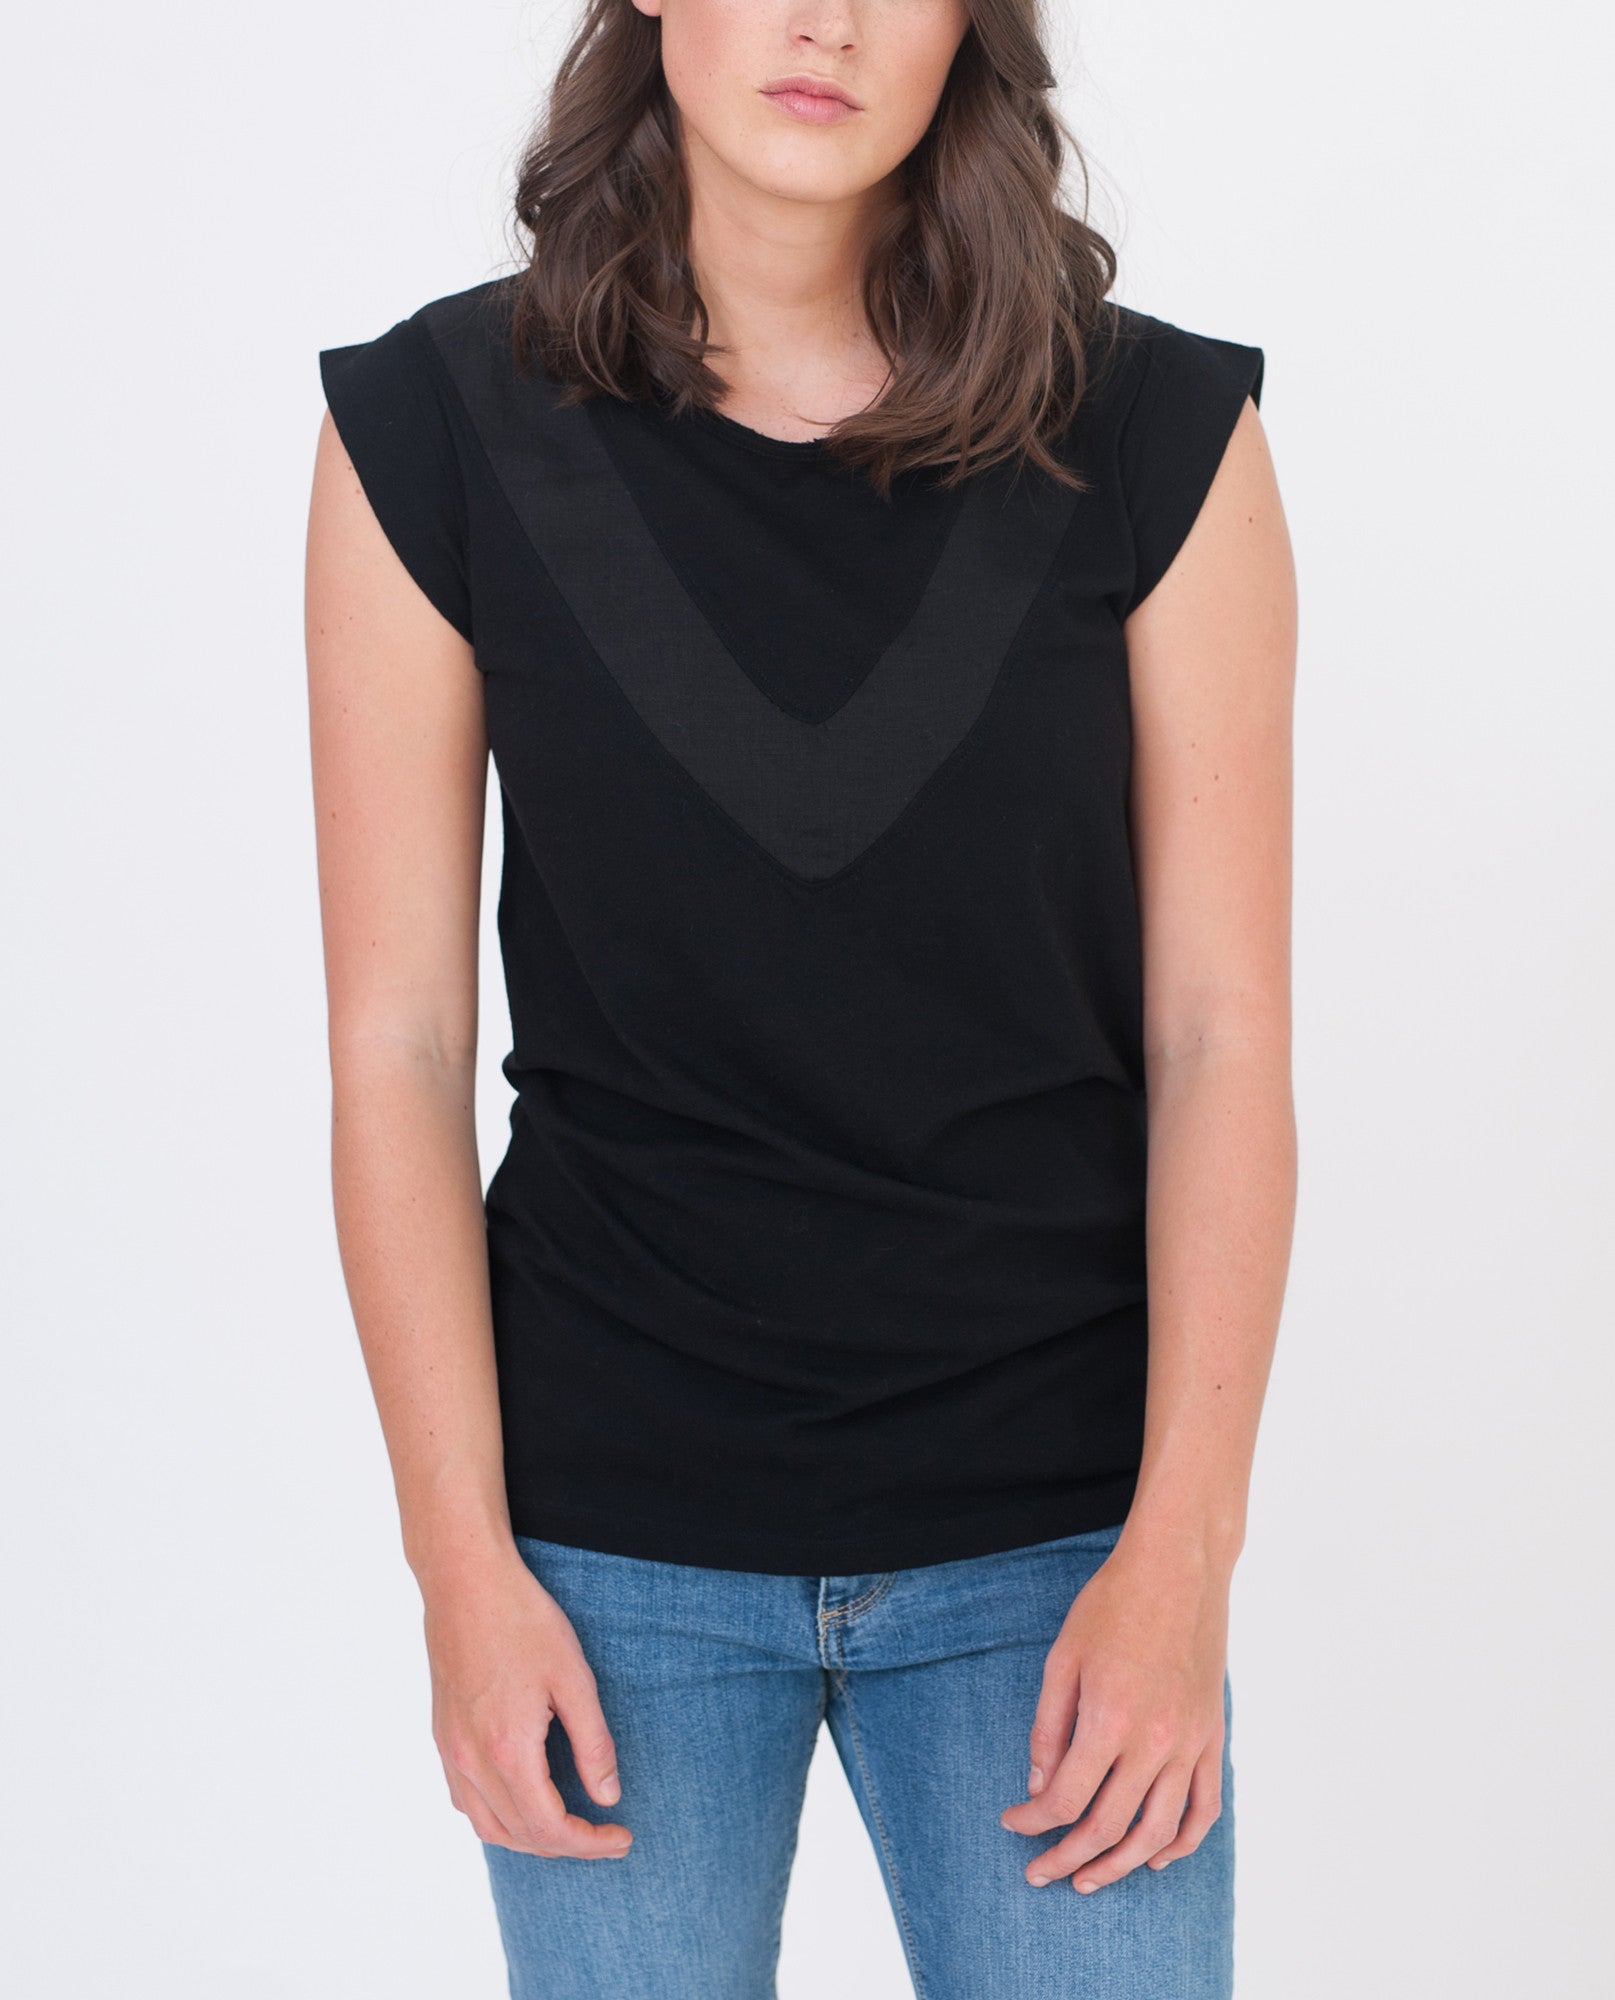 ANNABELLE Organic Cotton And Linen Top In Black from Beaumont Organic